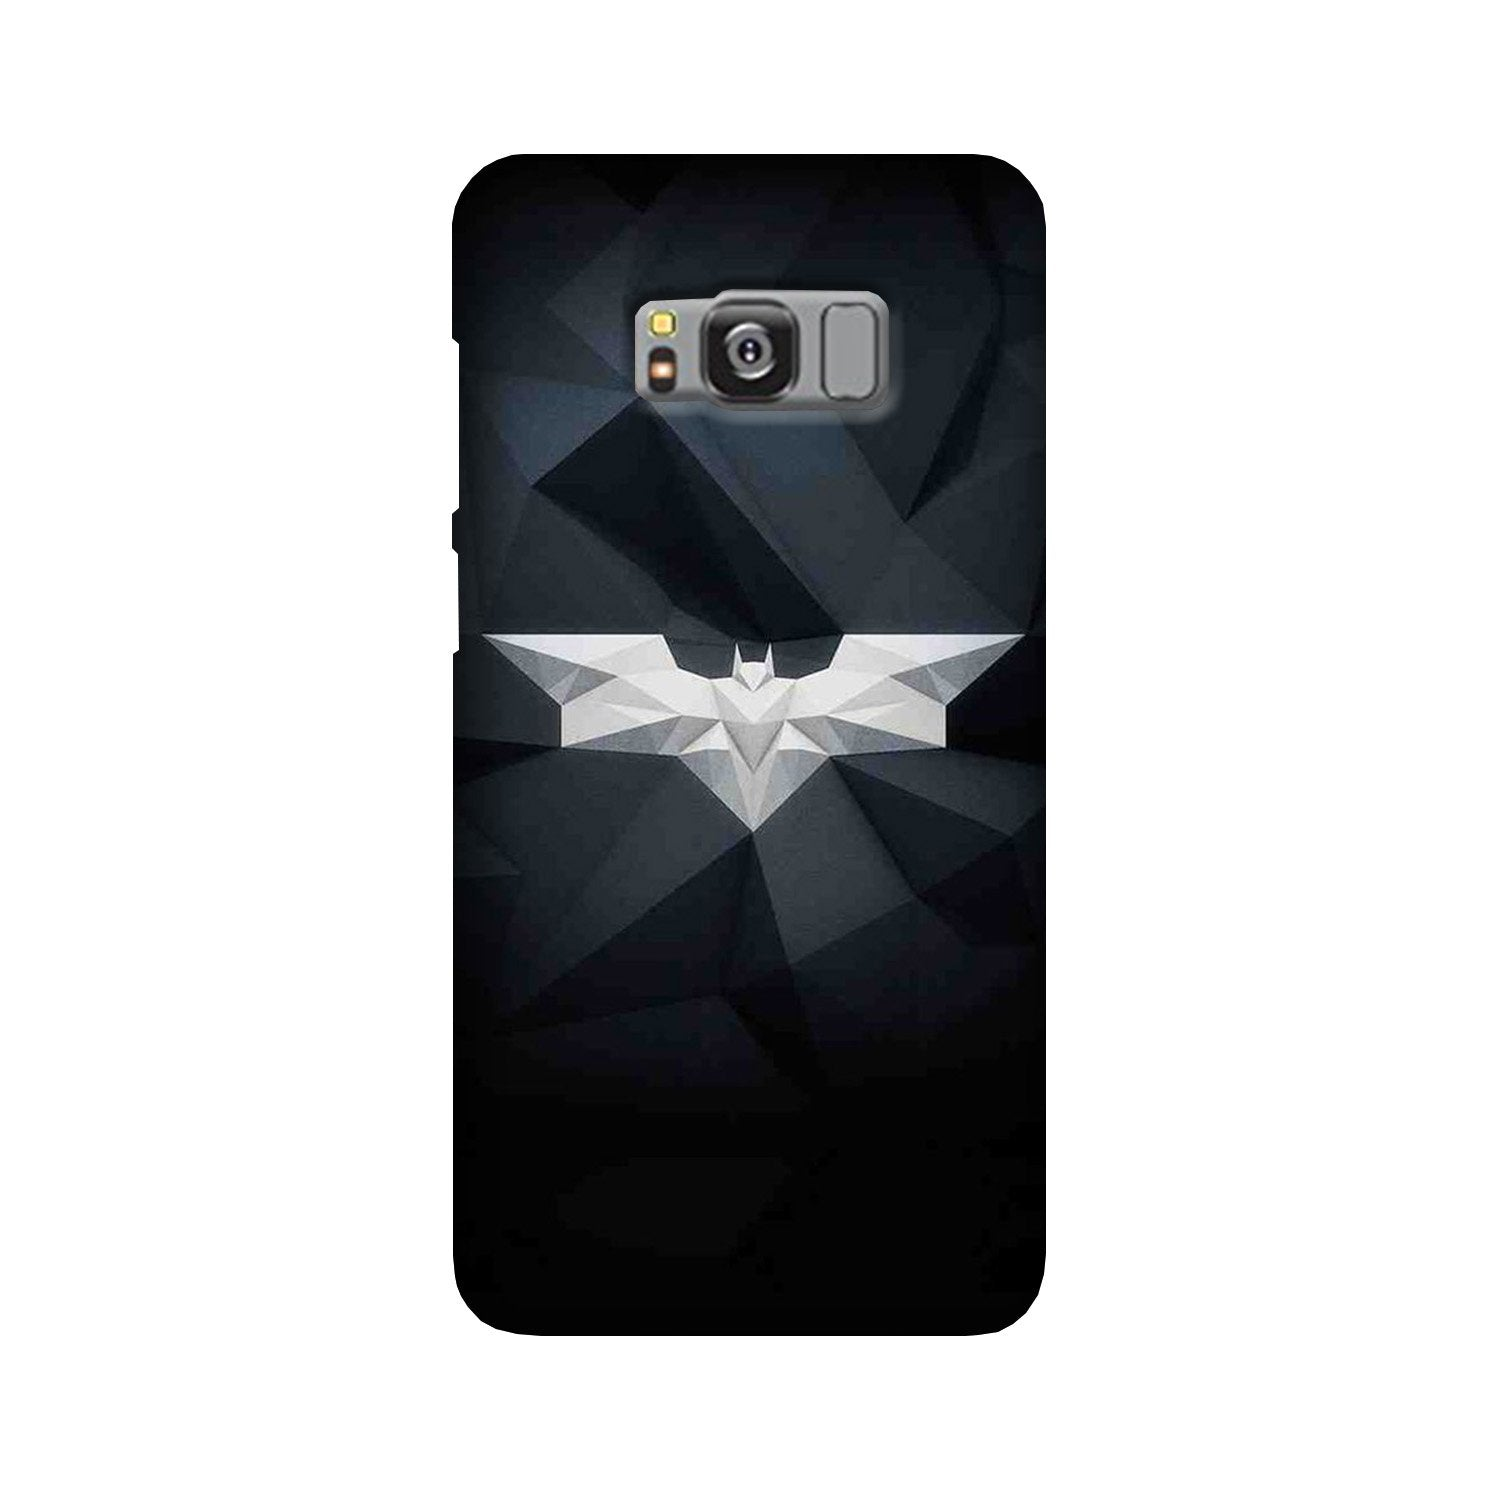 Batman Case for Galaxy S8